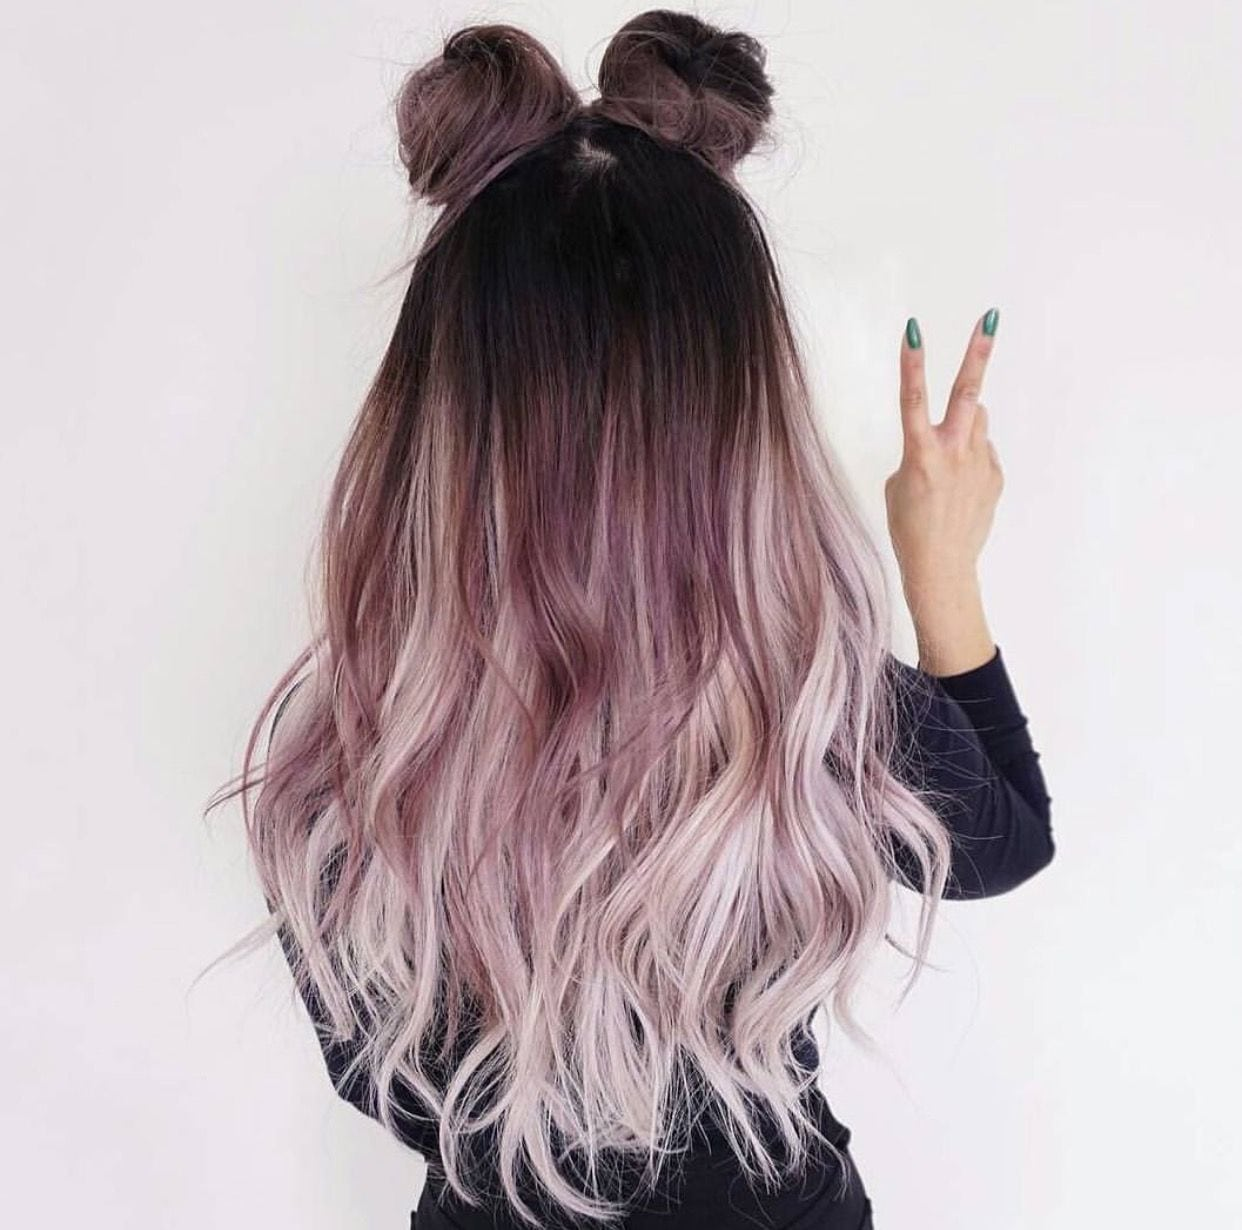 Awesome Rockin Hairstyle And Color  Ombre Dark To Light  Buns Bows